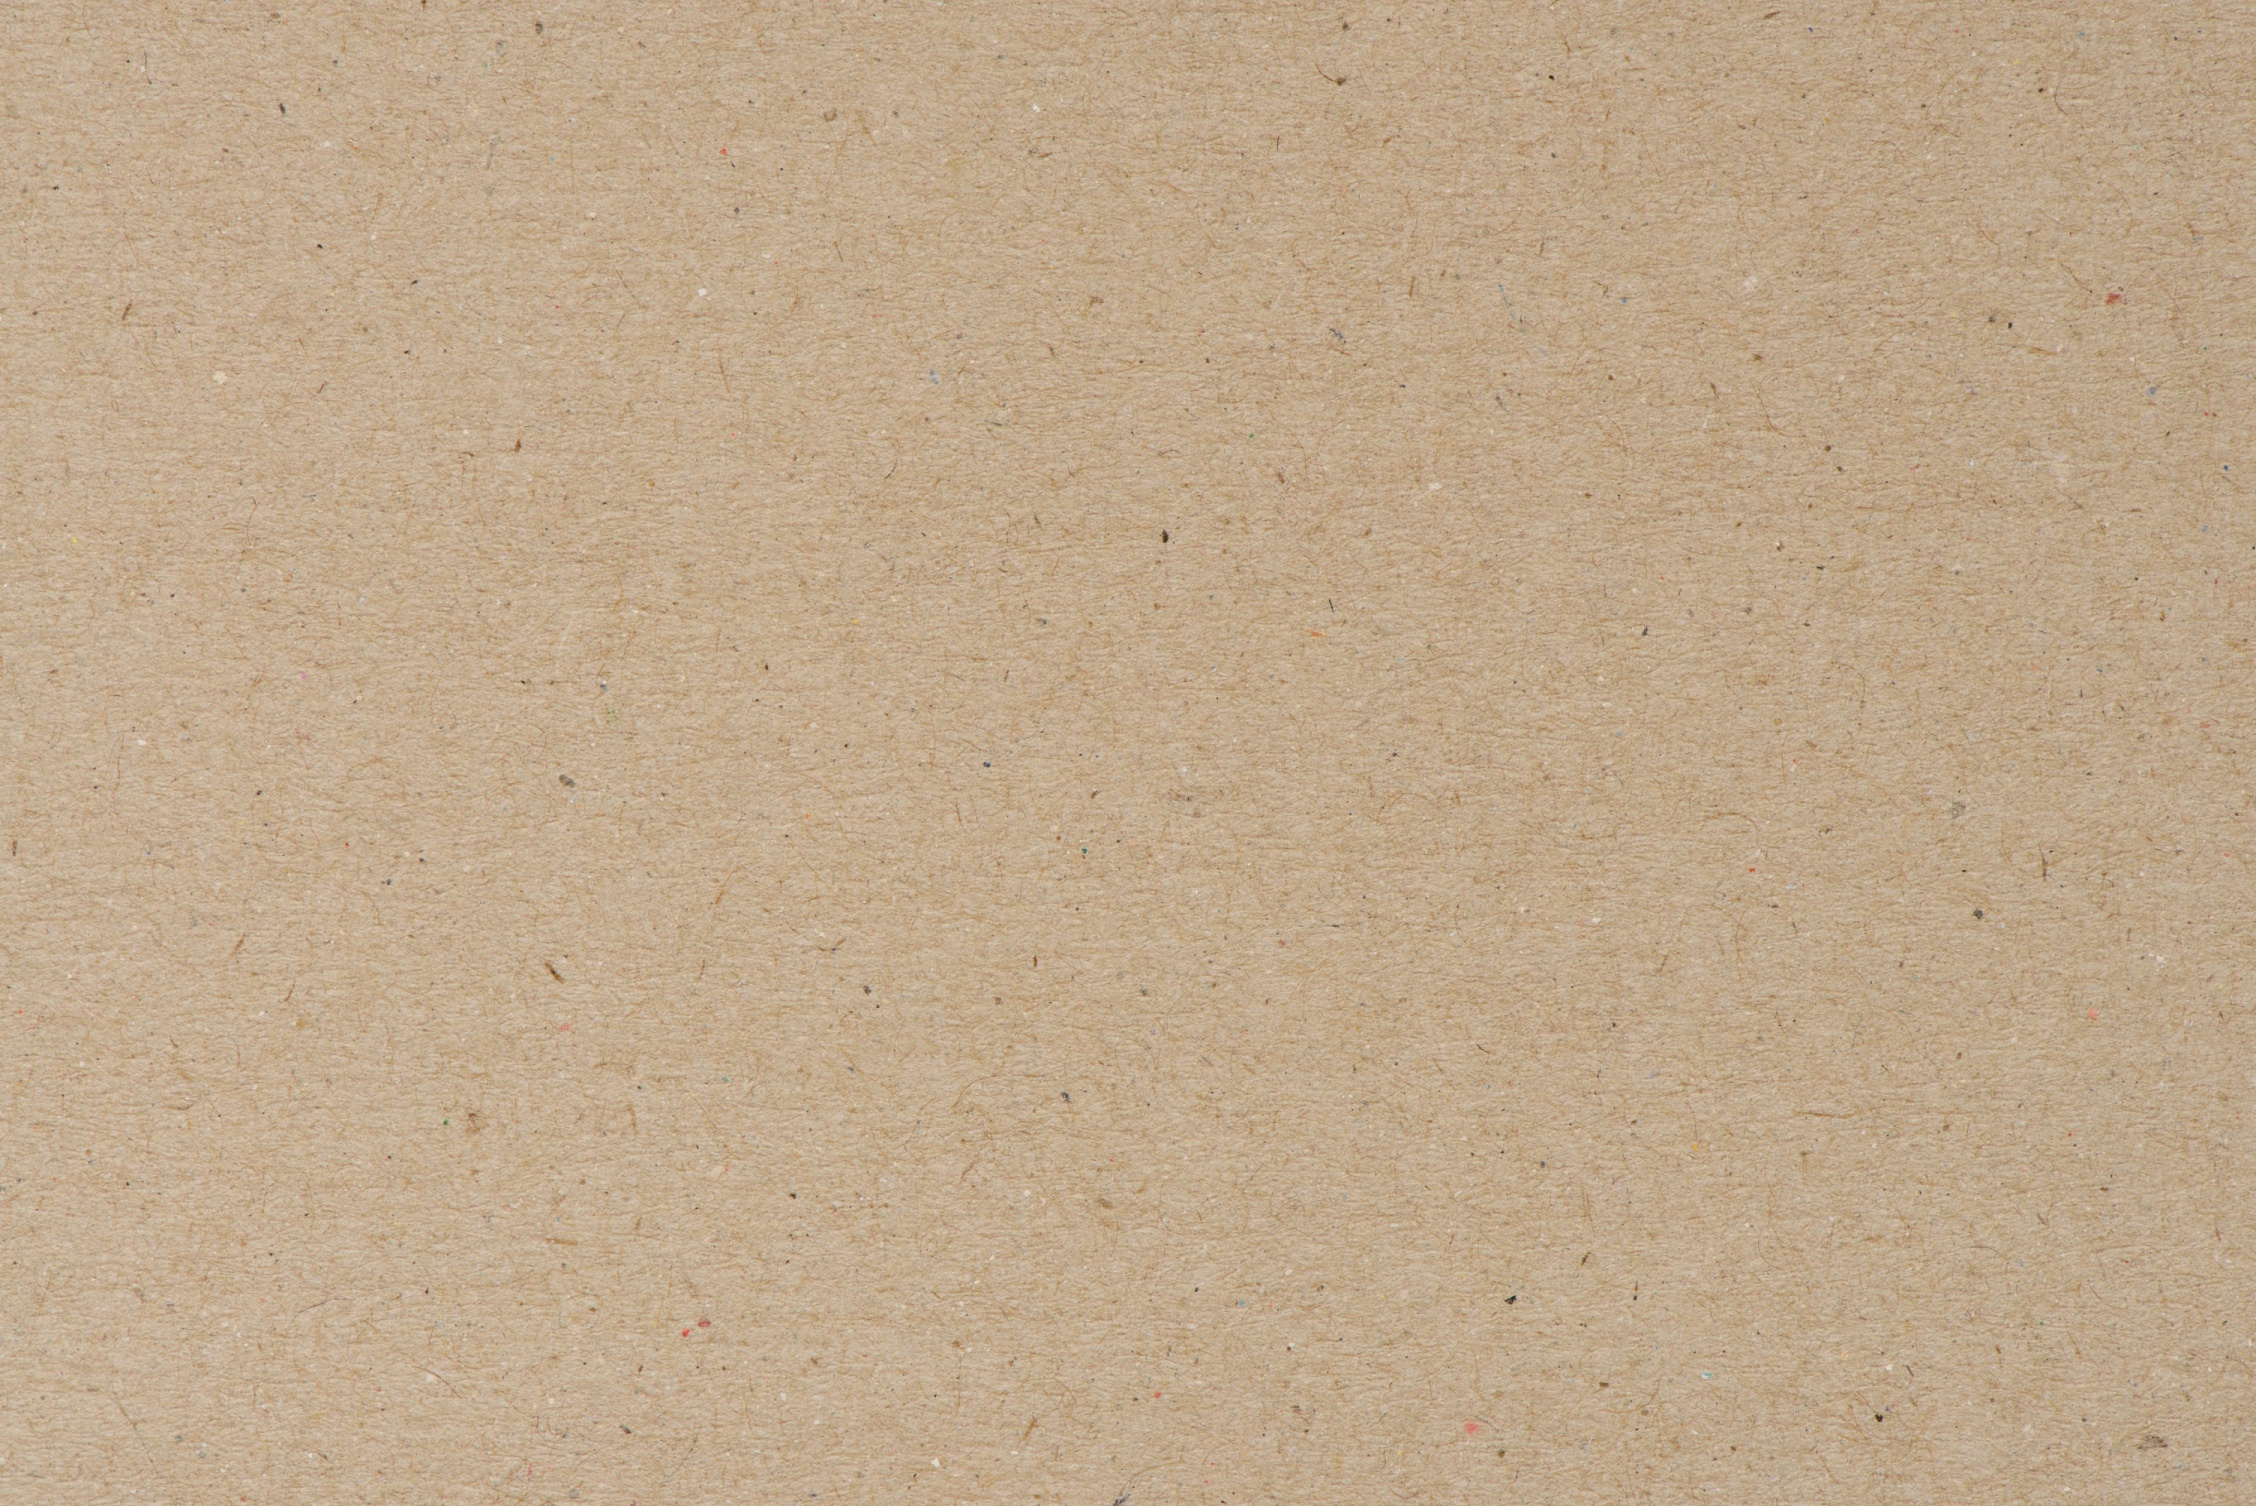 kraft paper texture 10,678 best kraft paper texture background highdefinition free stock photos download for commercial use in hd high resolution jpg images format kraft paper texture background highdefinition, free stock photos, kraft paper texture background highdefinition, kraft paper texture background, paper texture background highdefinition, kraft paper.